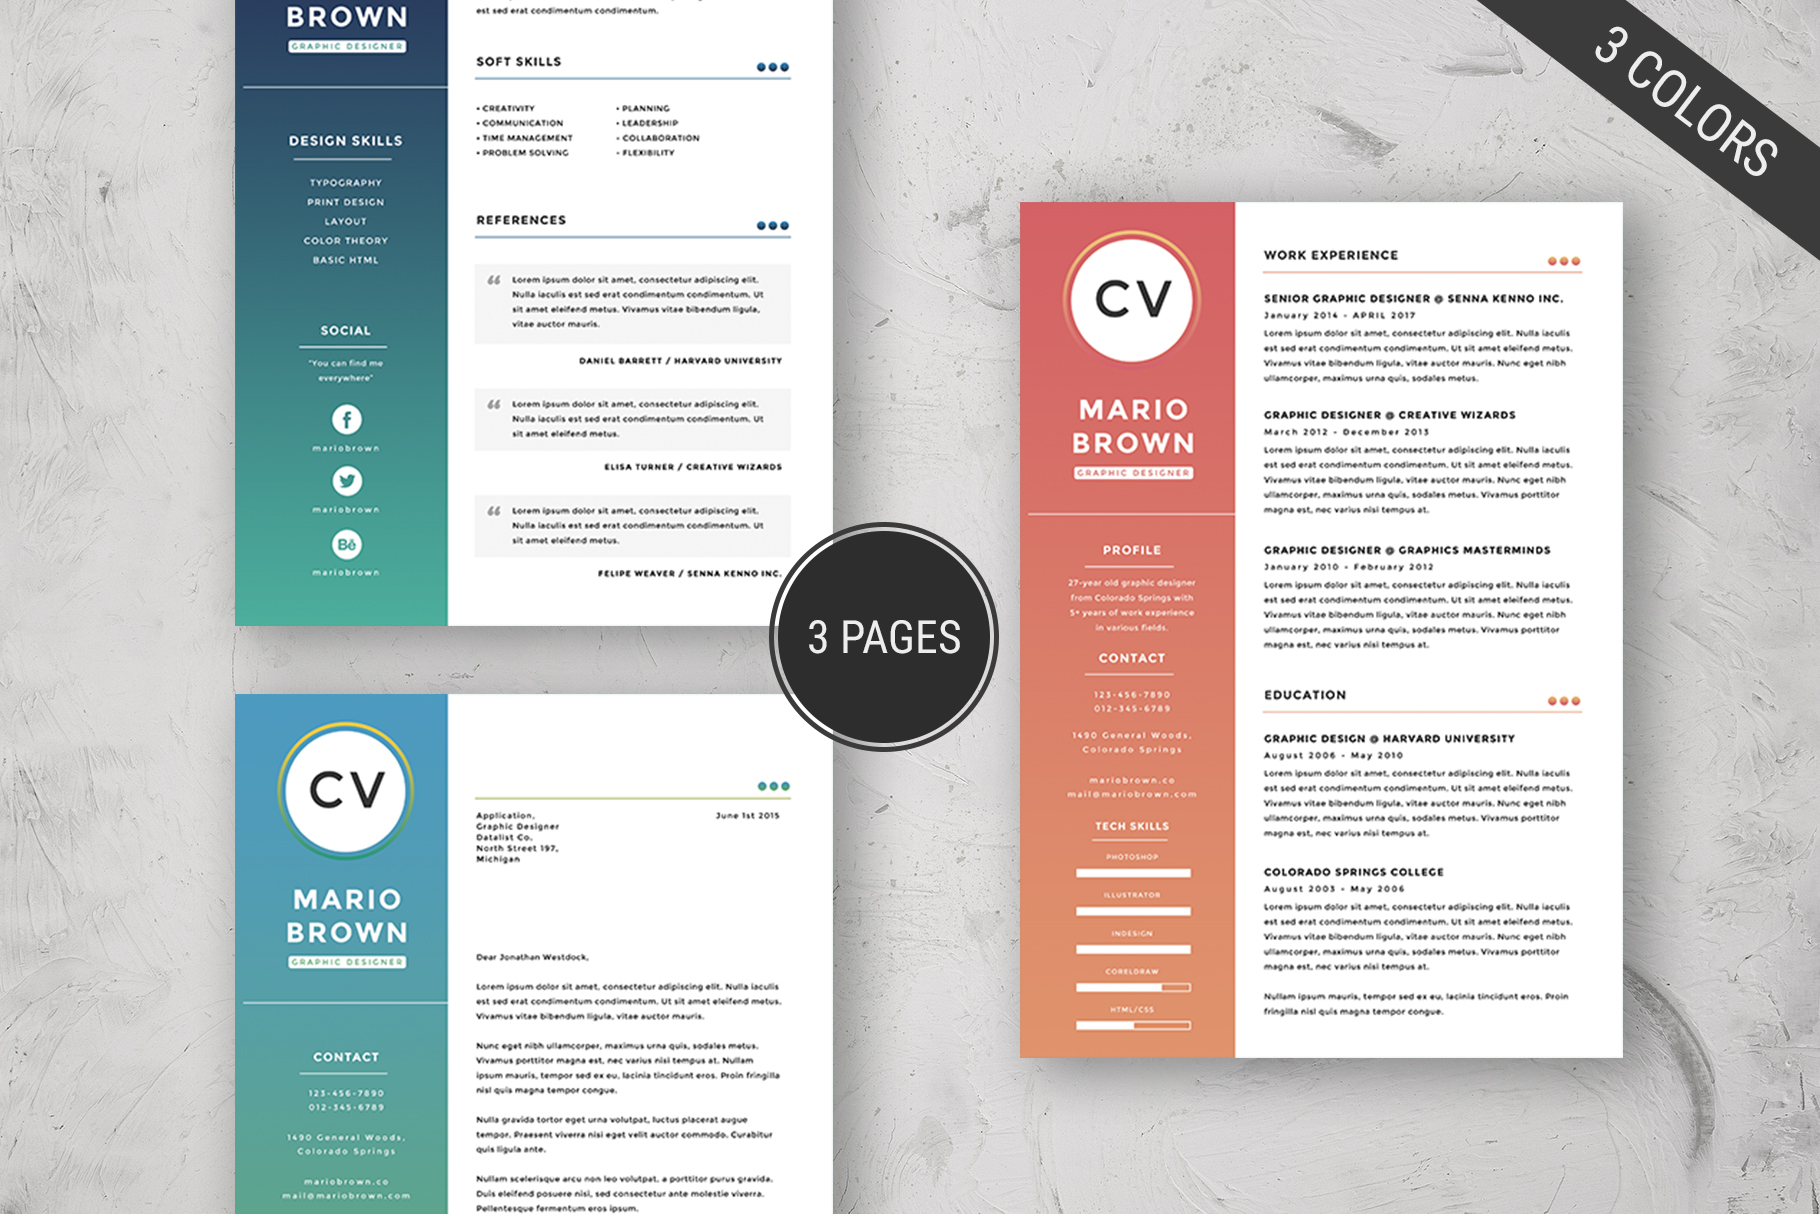 Resume Template 3 pages   CV example image 4